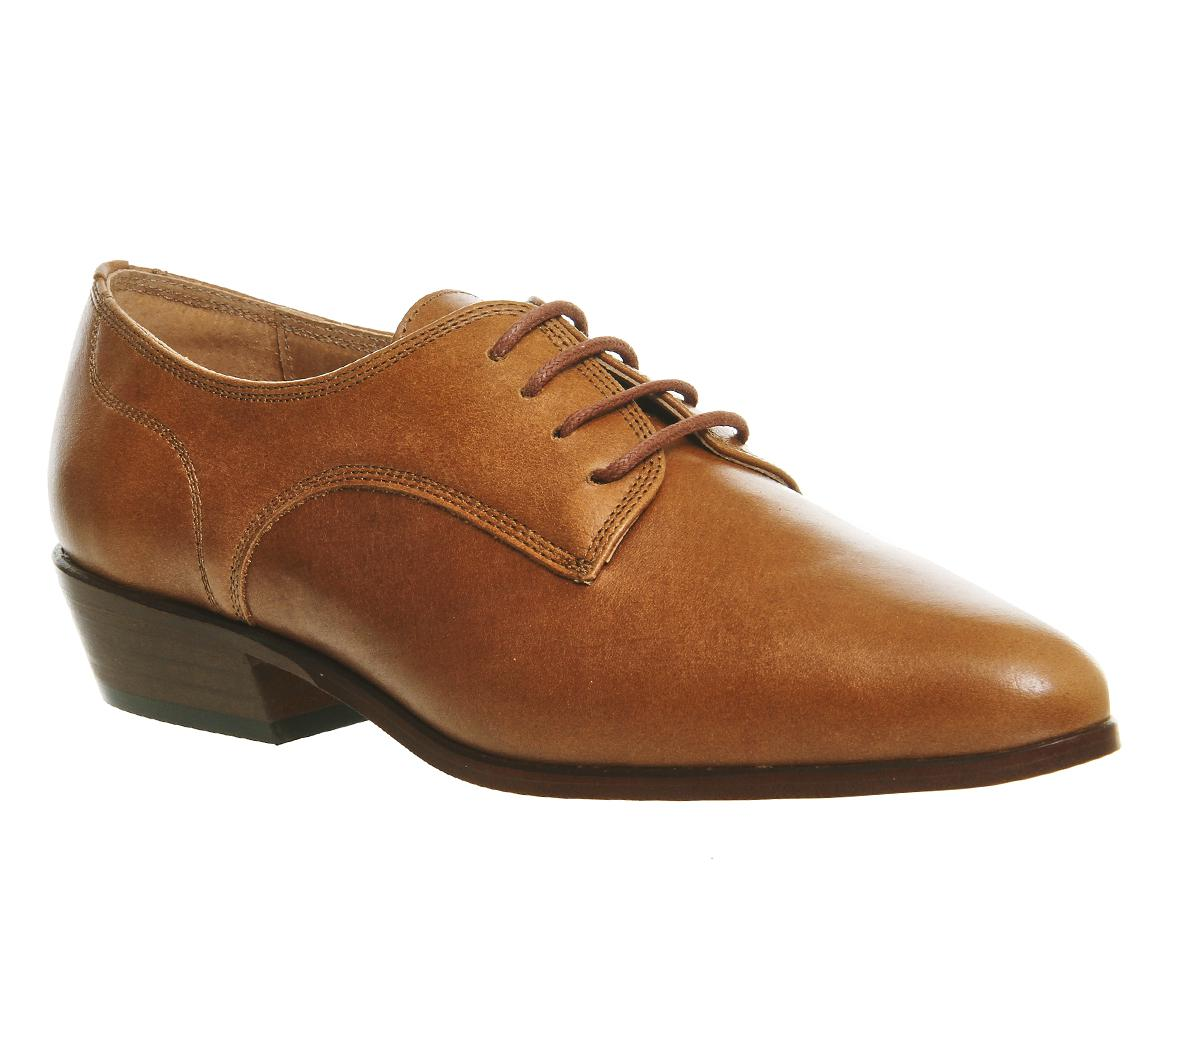 FOOTWEAR - Lace-up shoes Piccadilly Clearance 100% Guaranteed Ebay Cheap Price Outlet Brand New Unisex Pru16j